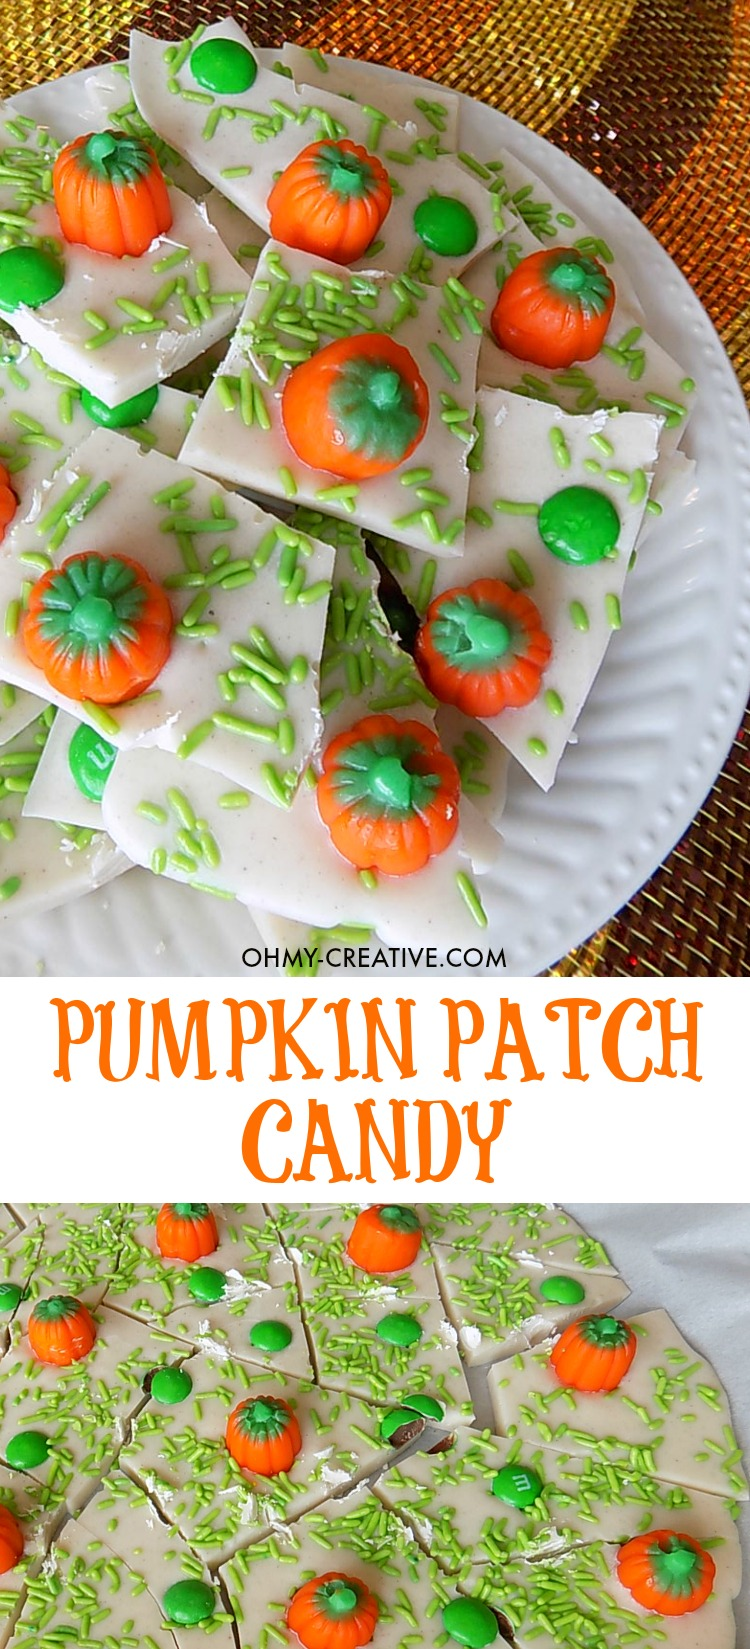 This Pumpkin Patch Candy Bark with Pumpkin Spice flavors is as cute as it is delicious. Perfect for any fall gathering, Halloween party or as a fun recipe for the kids to make! Popular pins by OHMY-CREATIVE.COM